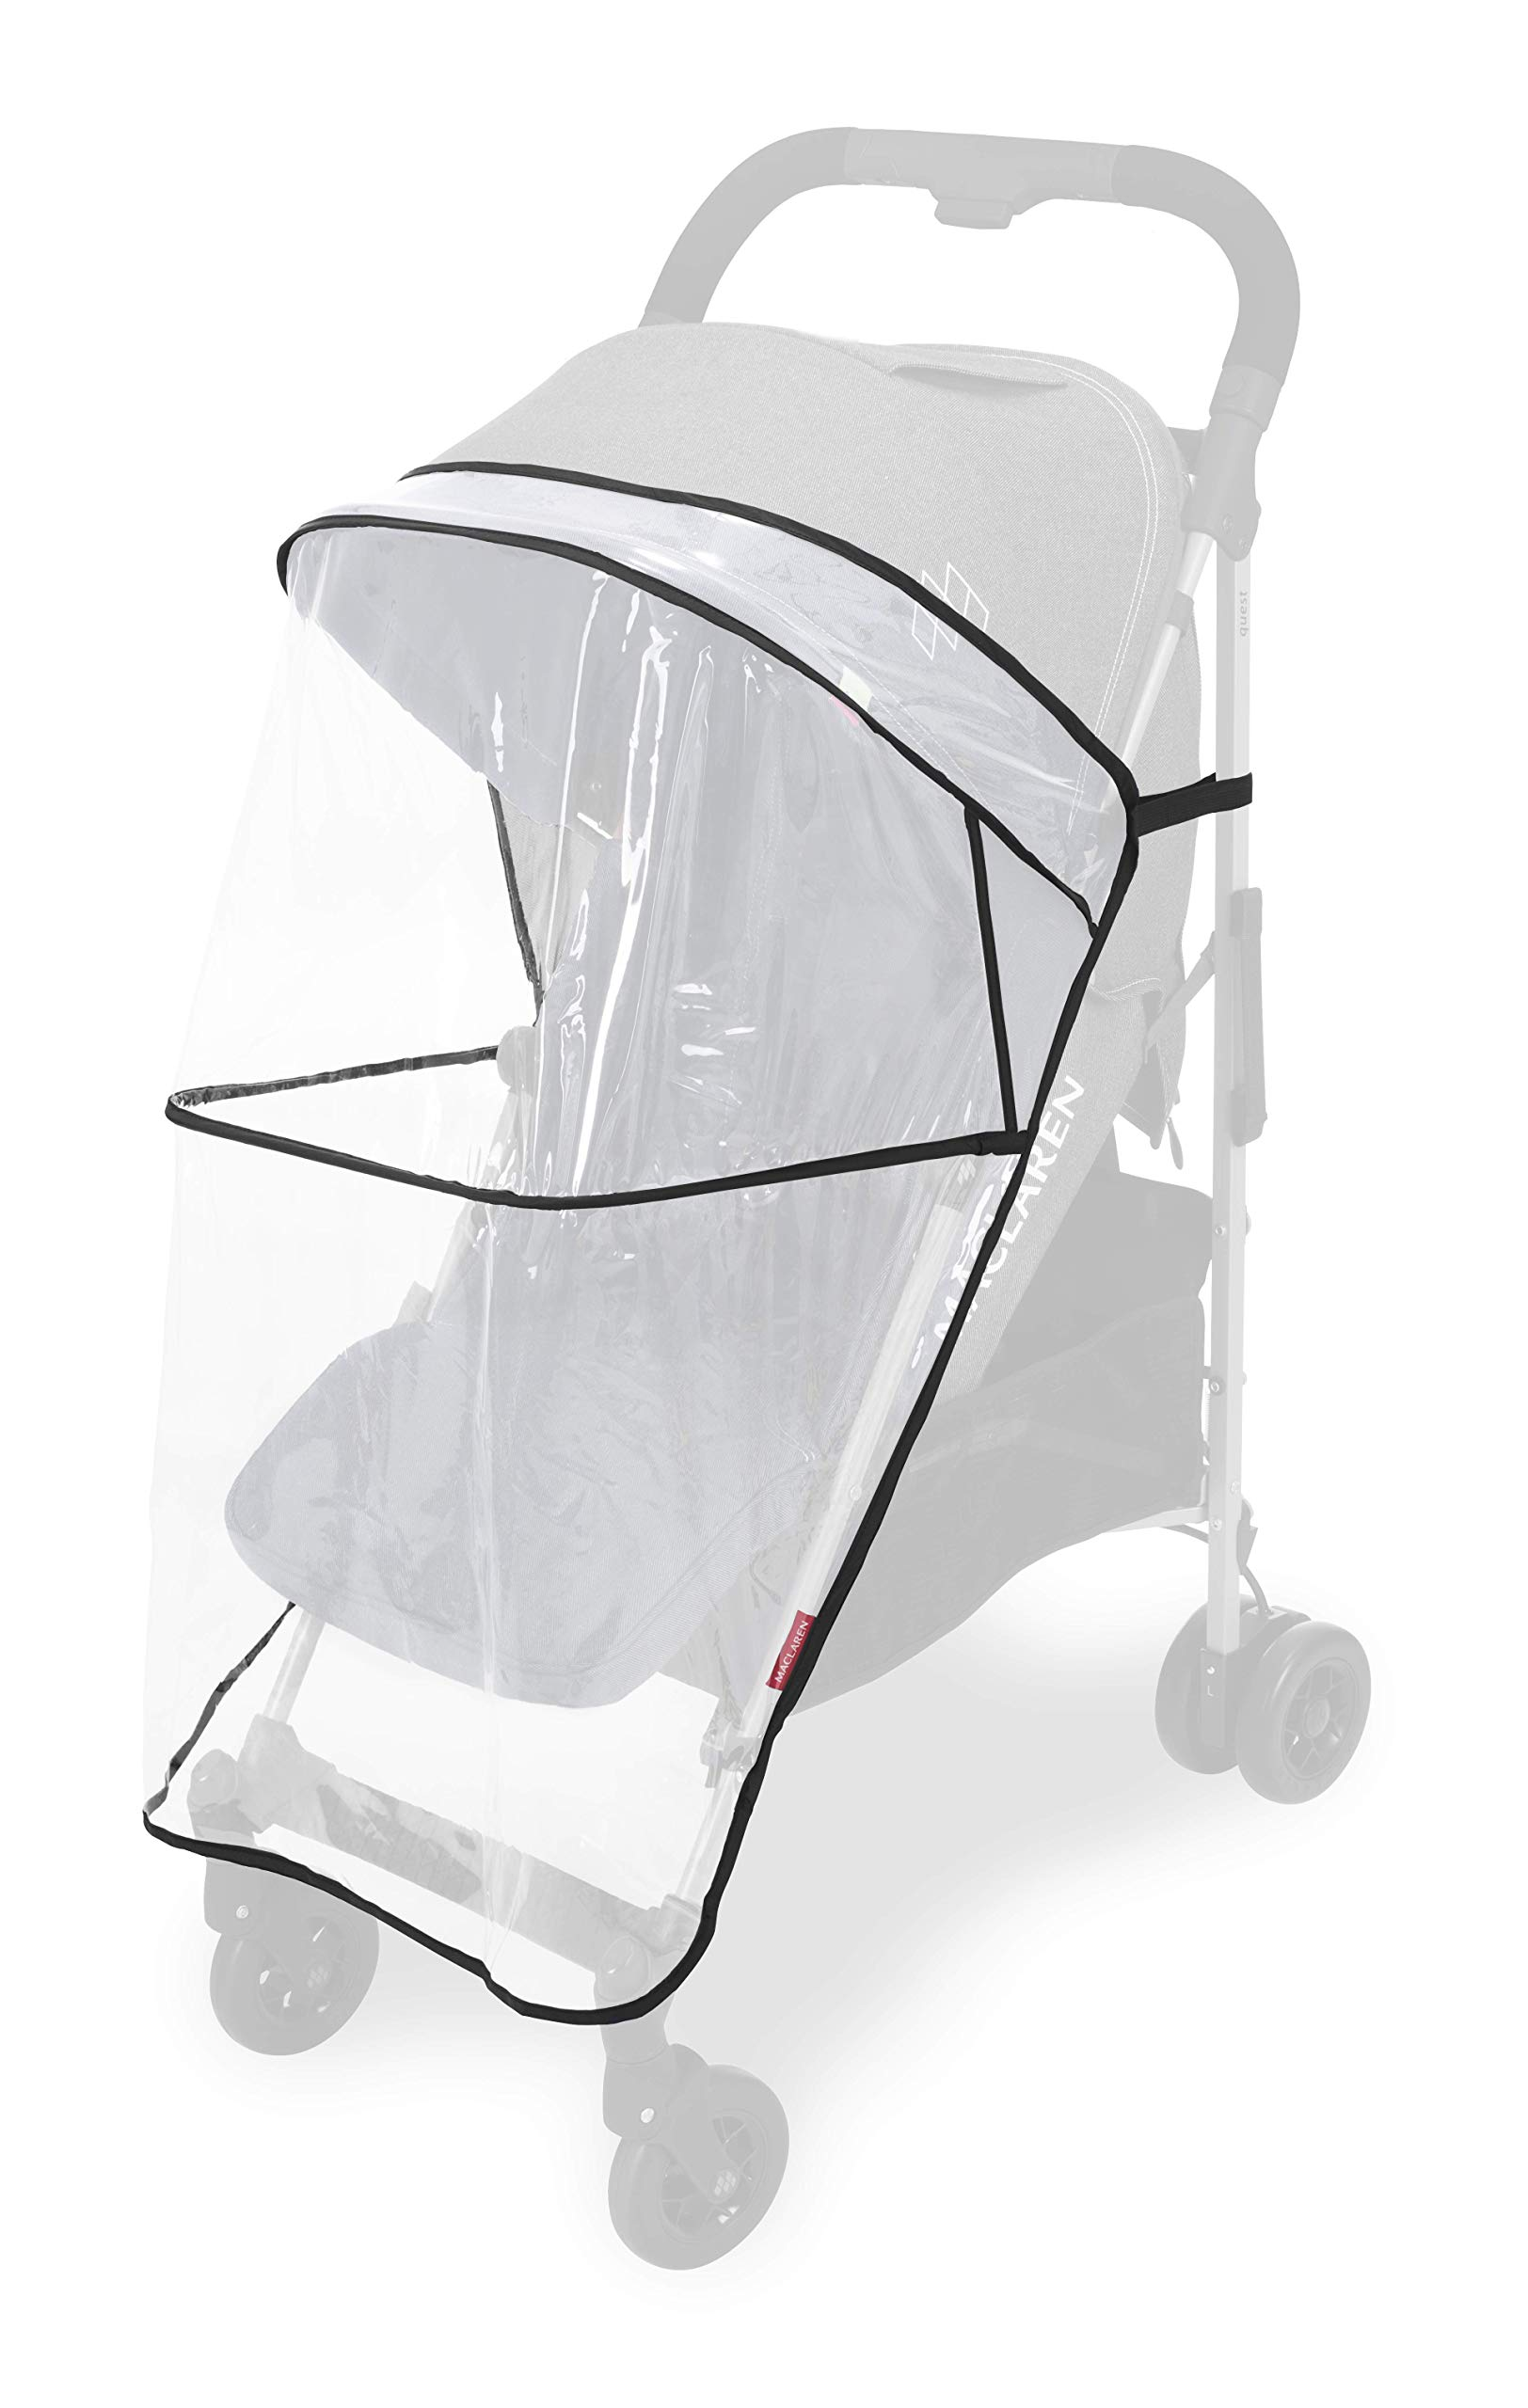 Maclaren Quest Arc Stroller- Ideal for Newborns up to 25kg with extendable UPF 50+/Waterproof Hood, Multi-Position seat and 4-Wheel Suspension. Maclaren Carrycot Compatible. Accessories in The Box Maclaren Lightweight and compact. ideal for newborns and children up to 25kg. you can do it all with one-hand- open, close, push and adjust the seat, footrest and front safety lock Comfy and perfect for travel. the quest arc's padded seat reclines into 4 positions and converts into a new-born safety system. coupled with ultra light flat-free eva tires and all wheel suspension Smart product for active parents. compatible with the maclaren carrycot. all maclaren strollers have waterproof/ upf 50+ hoods to protect from the elements and machine washable seats to keep tidy 14